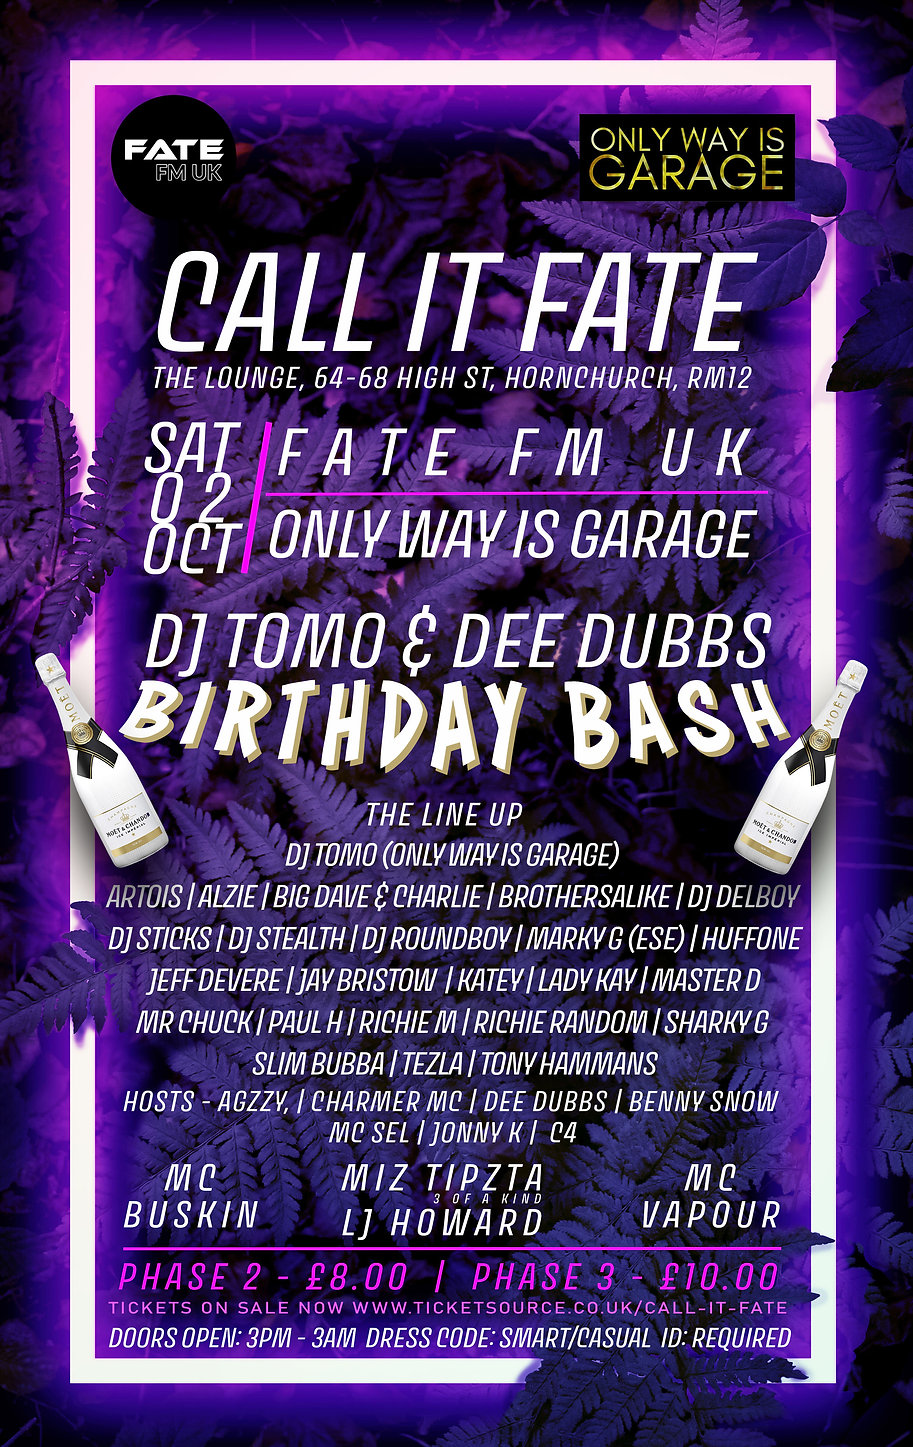 CALL IT FATE 2.10.21 FULL LINE UP